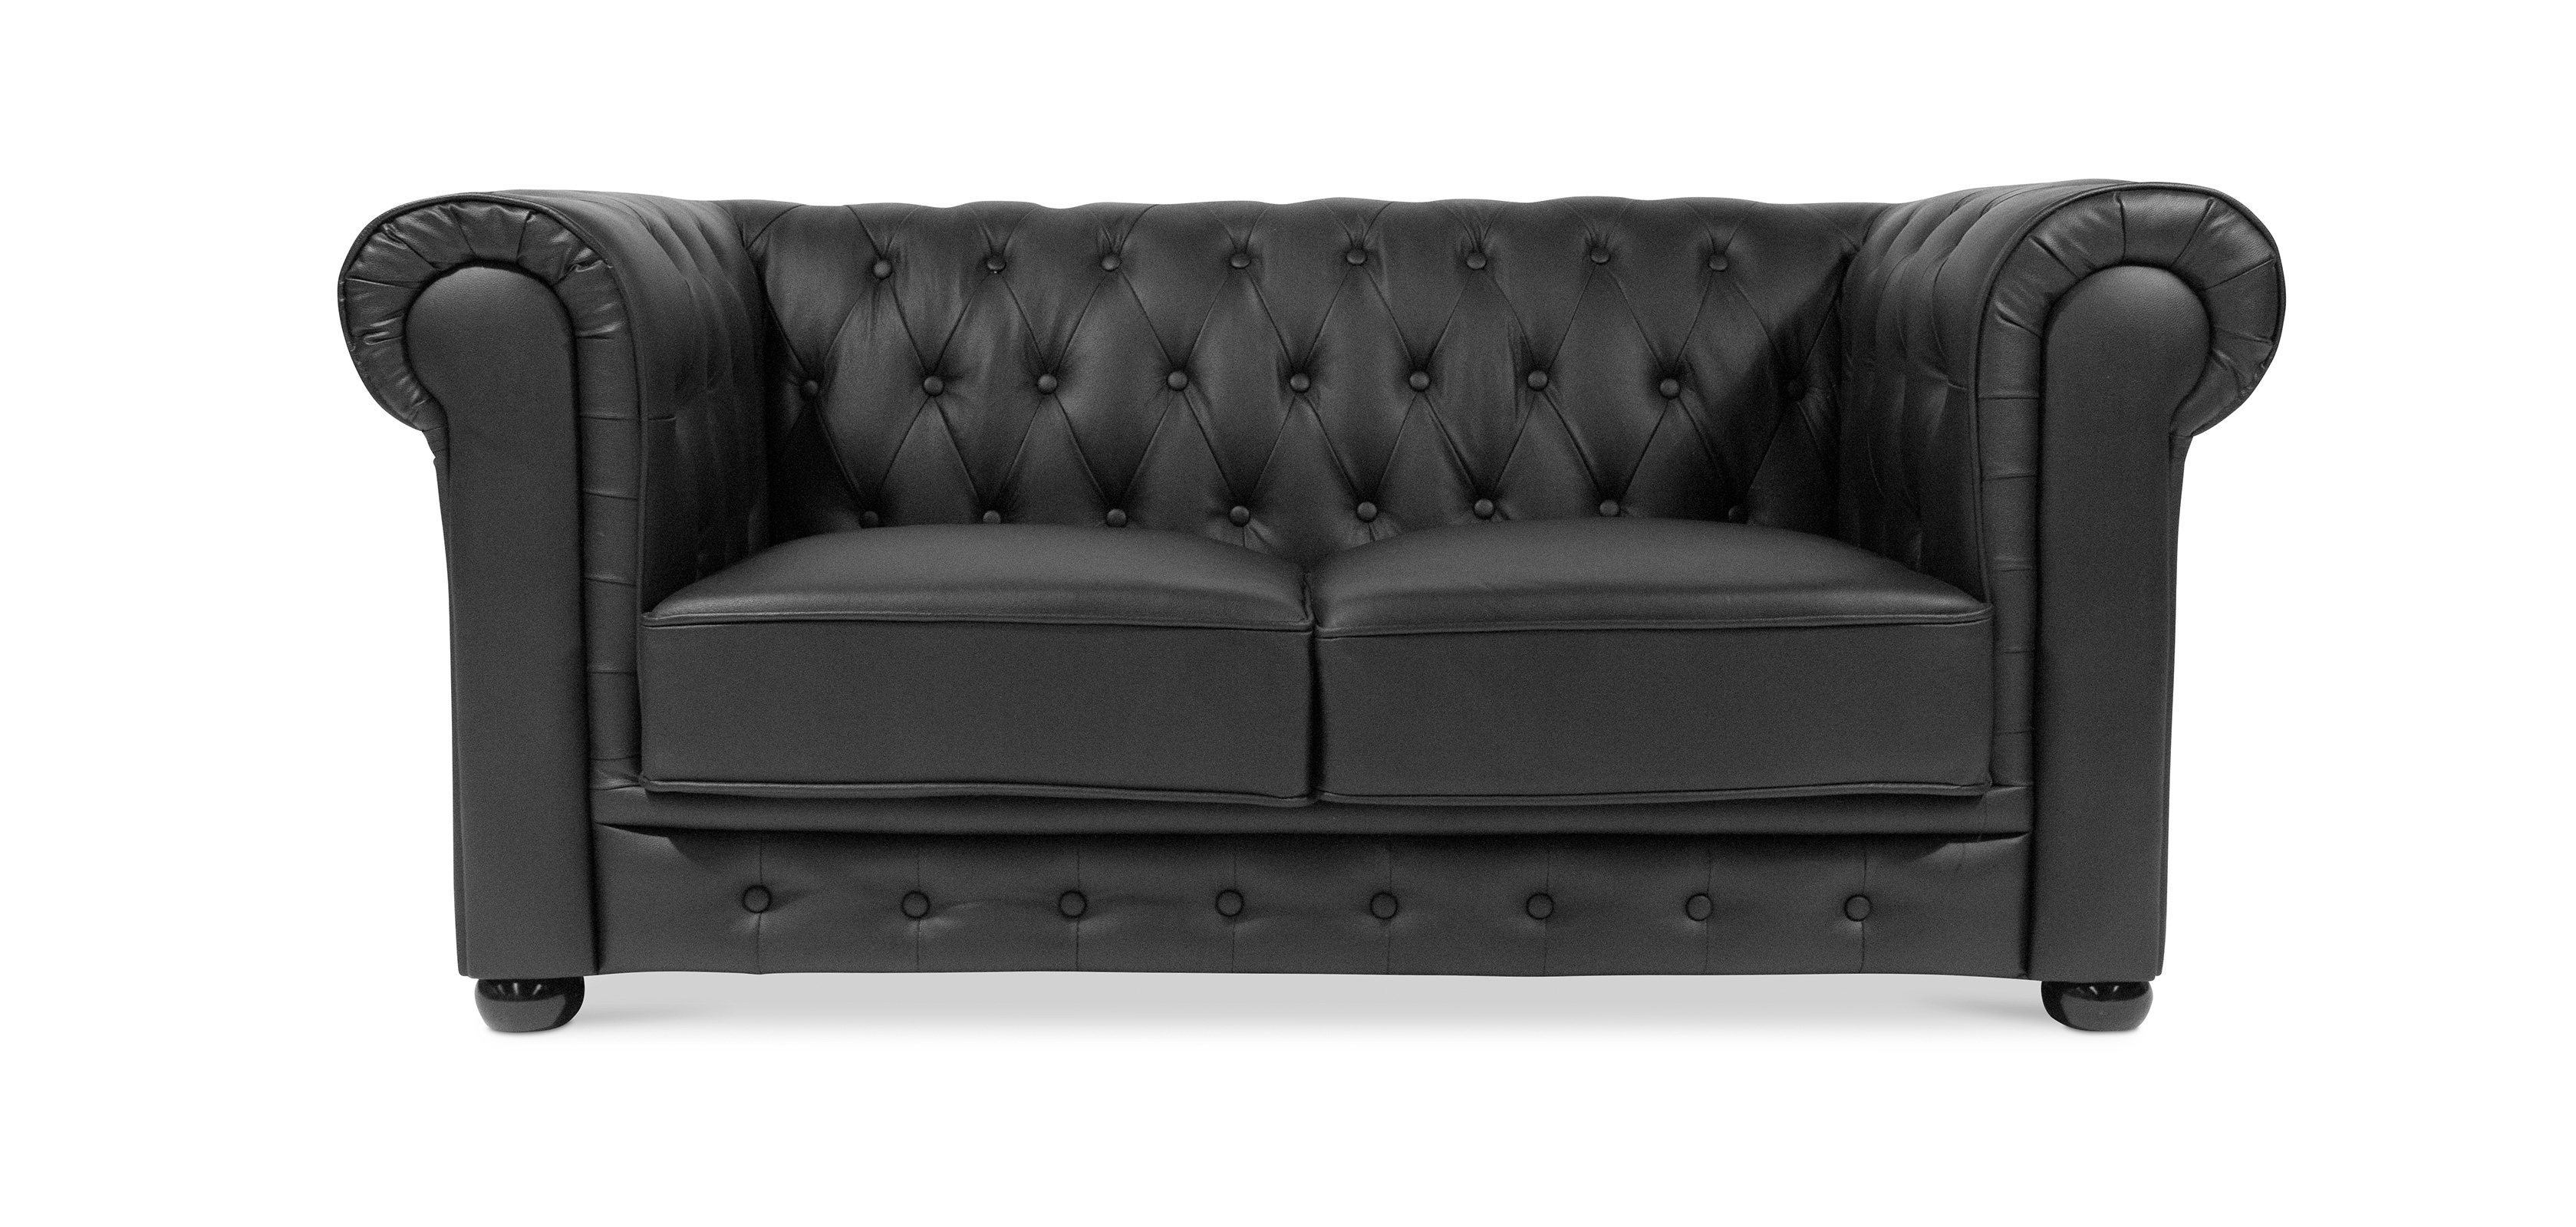 Canap chesterfield nacr 2 places cuir premium pas cher for Canape chesterfield cuir pas cher